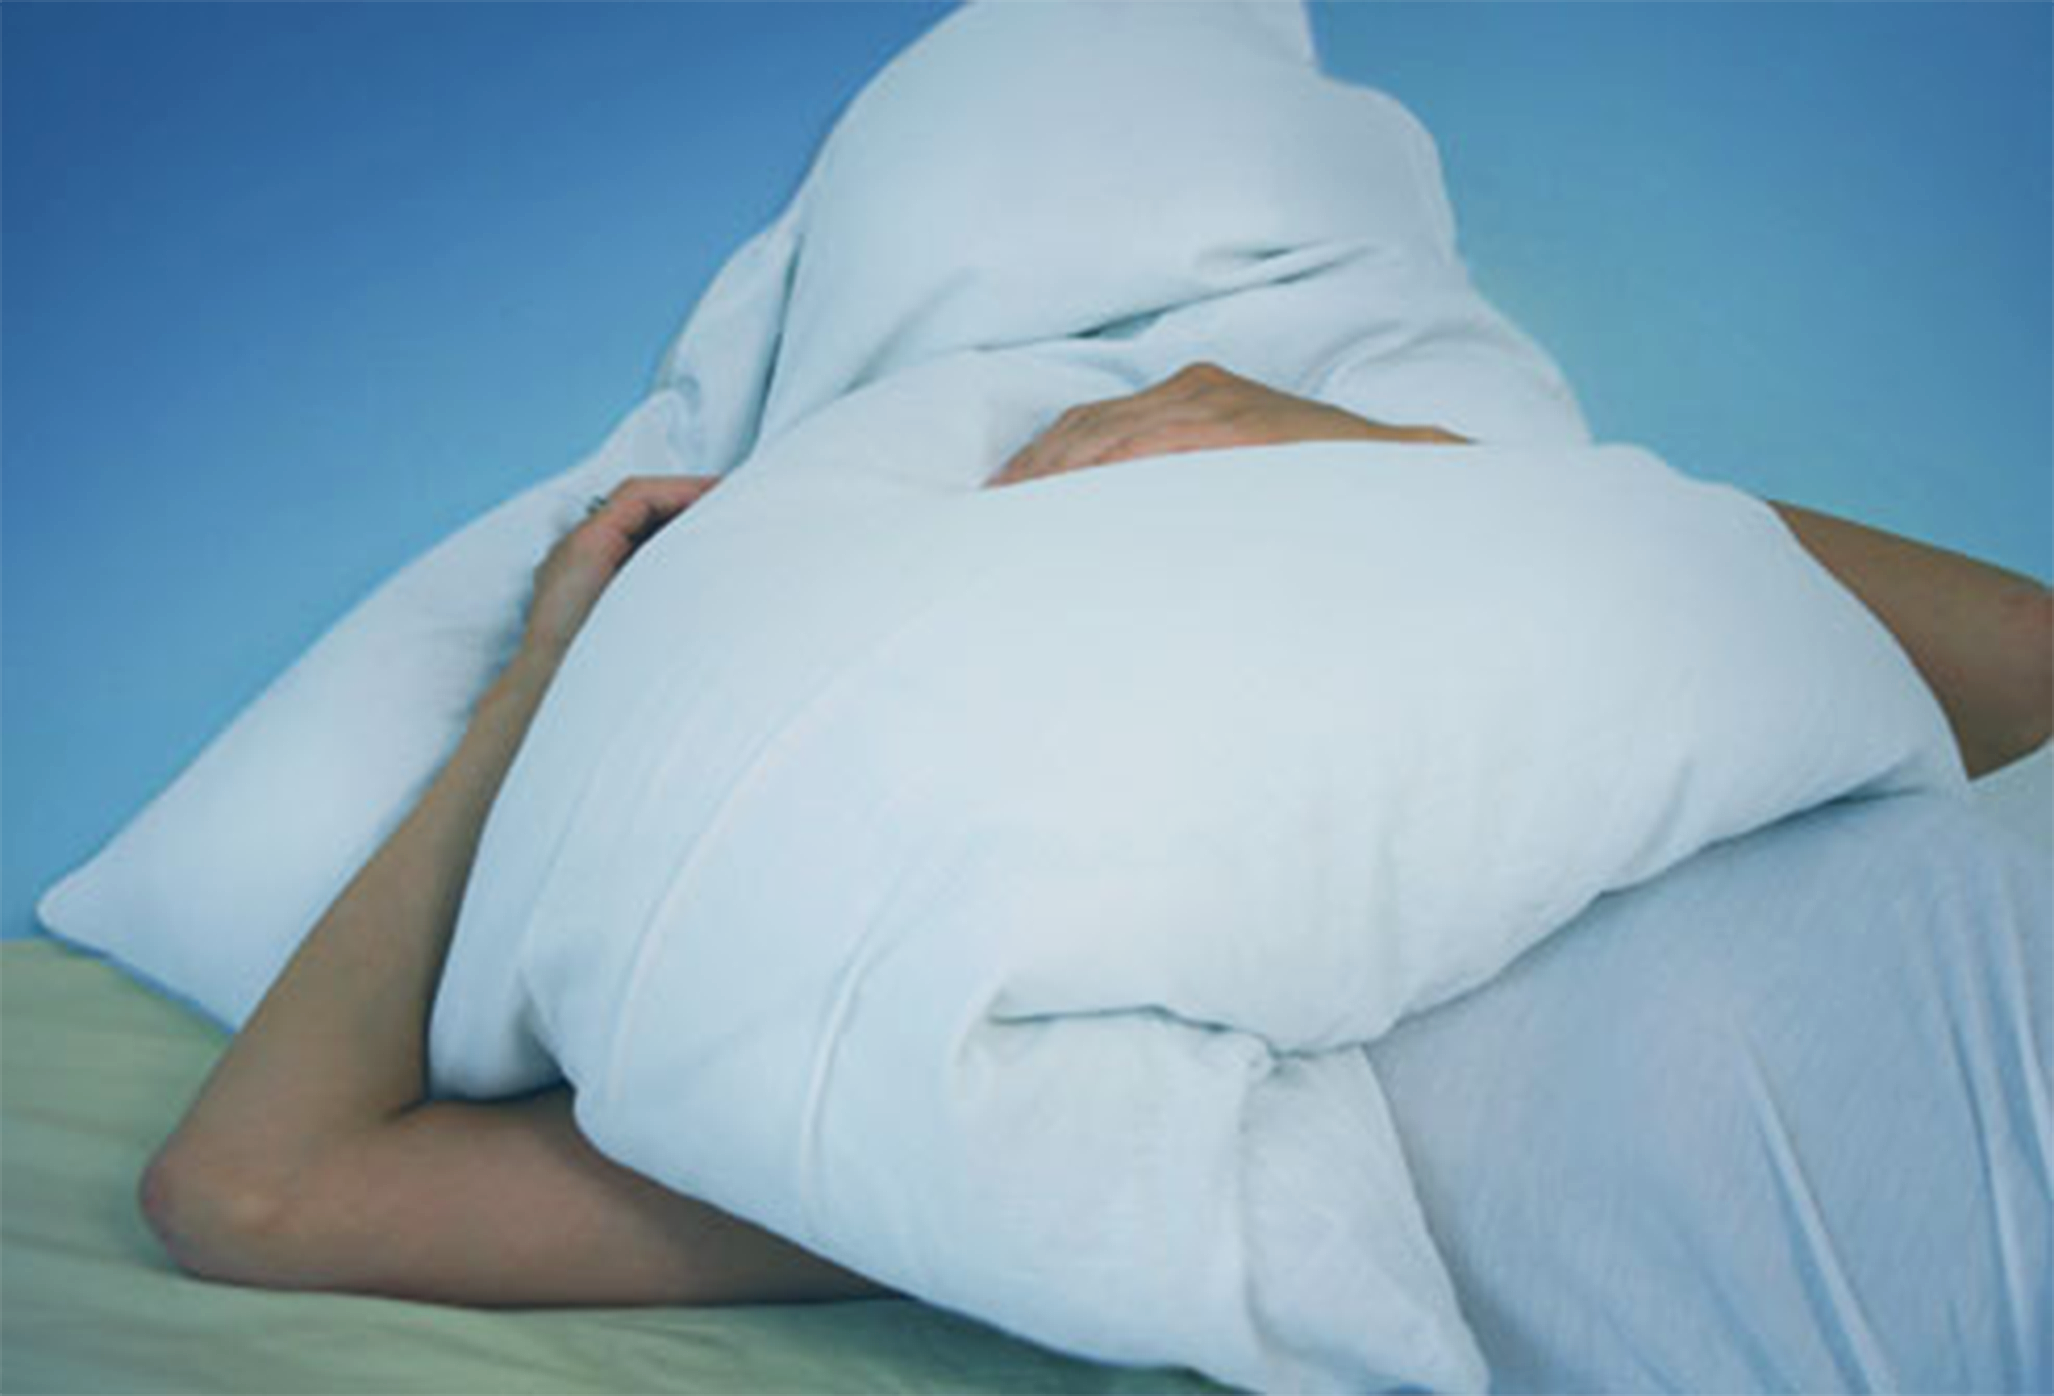 Putting a Pillow to cover head